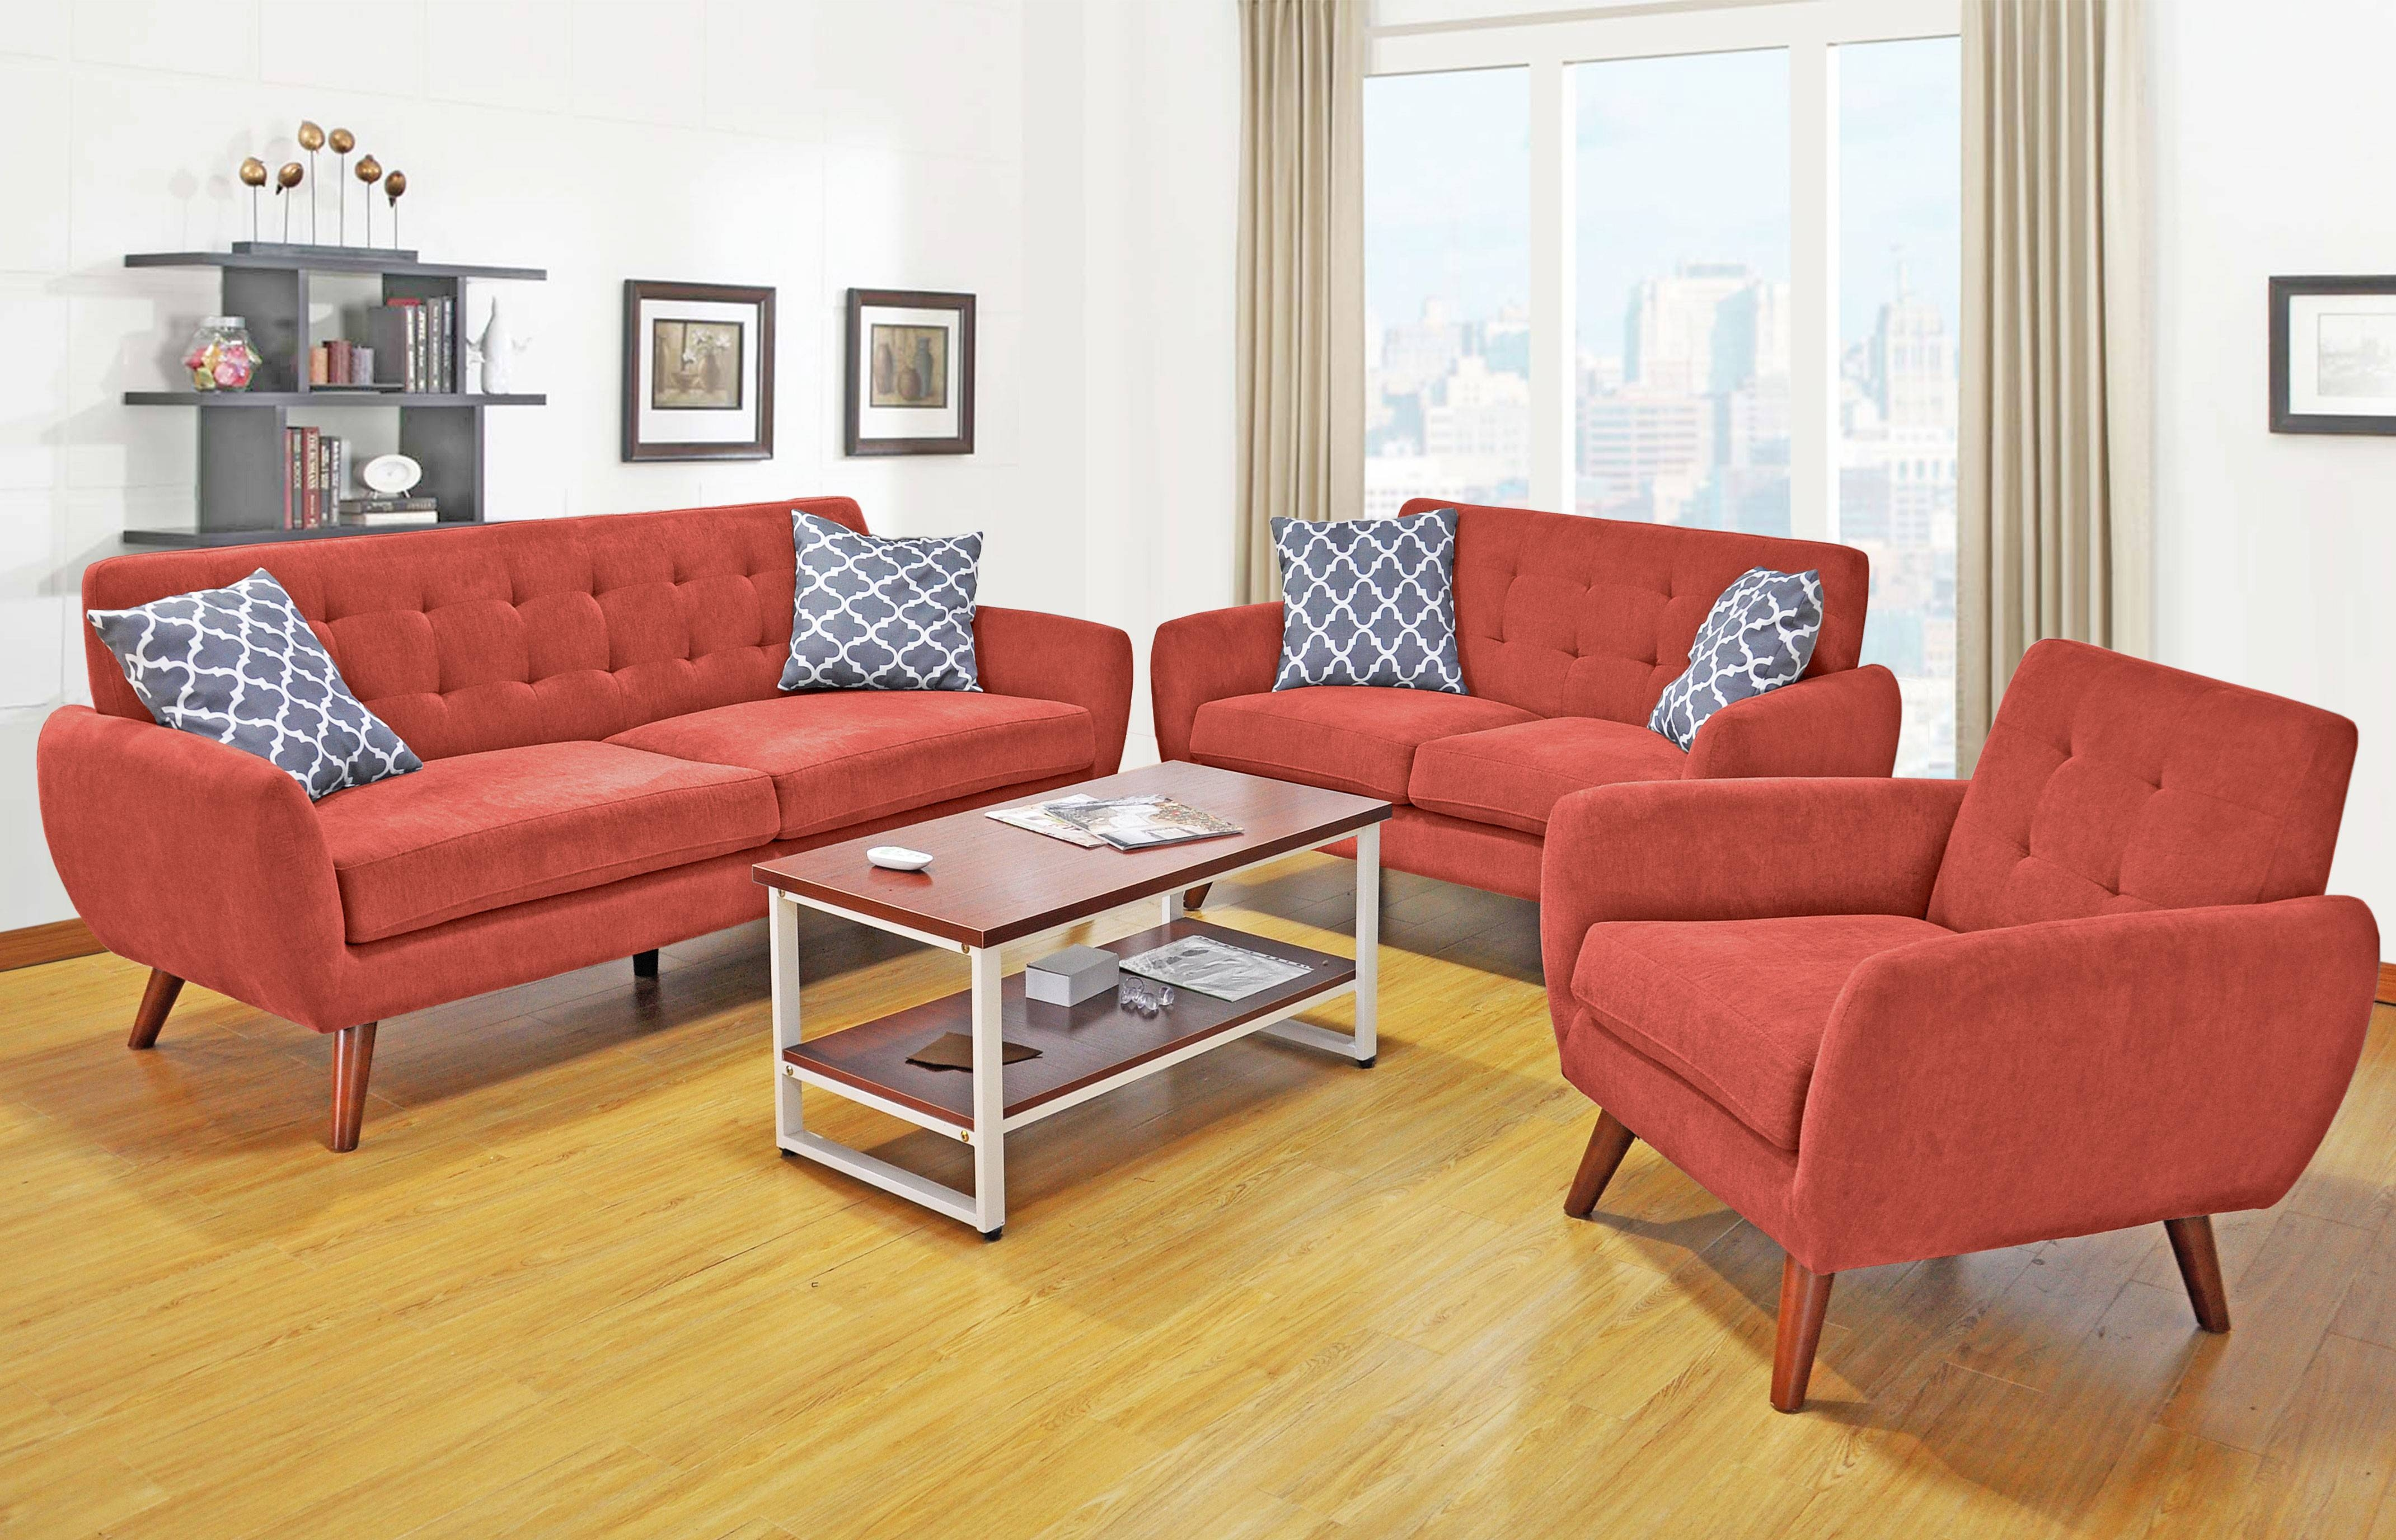 Mid Century Modern Sofa & Loveseat Living Room Set | Orange County For Sofas Orange County (View 6 of 30)